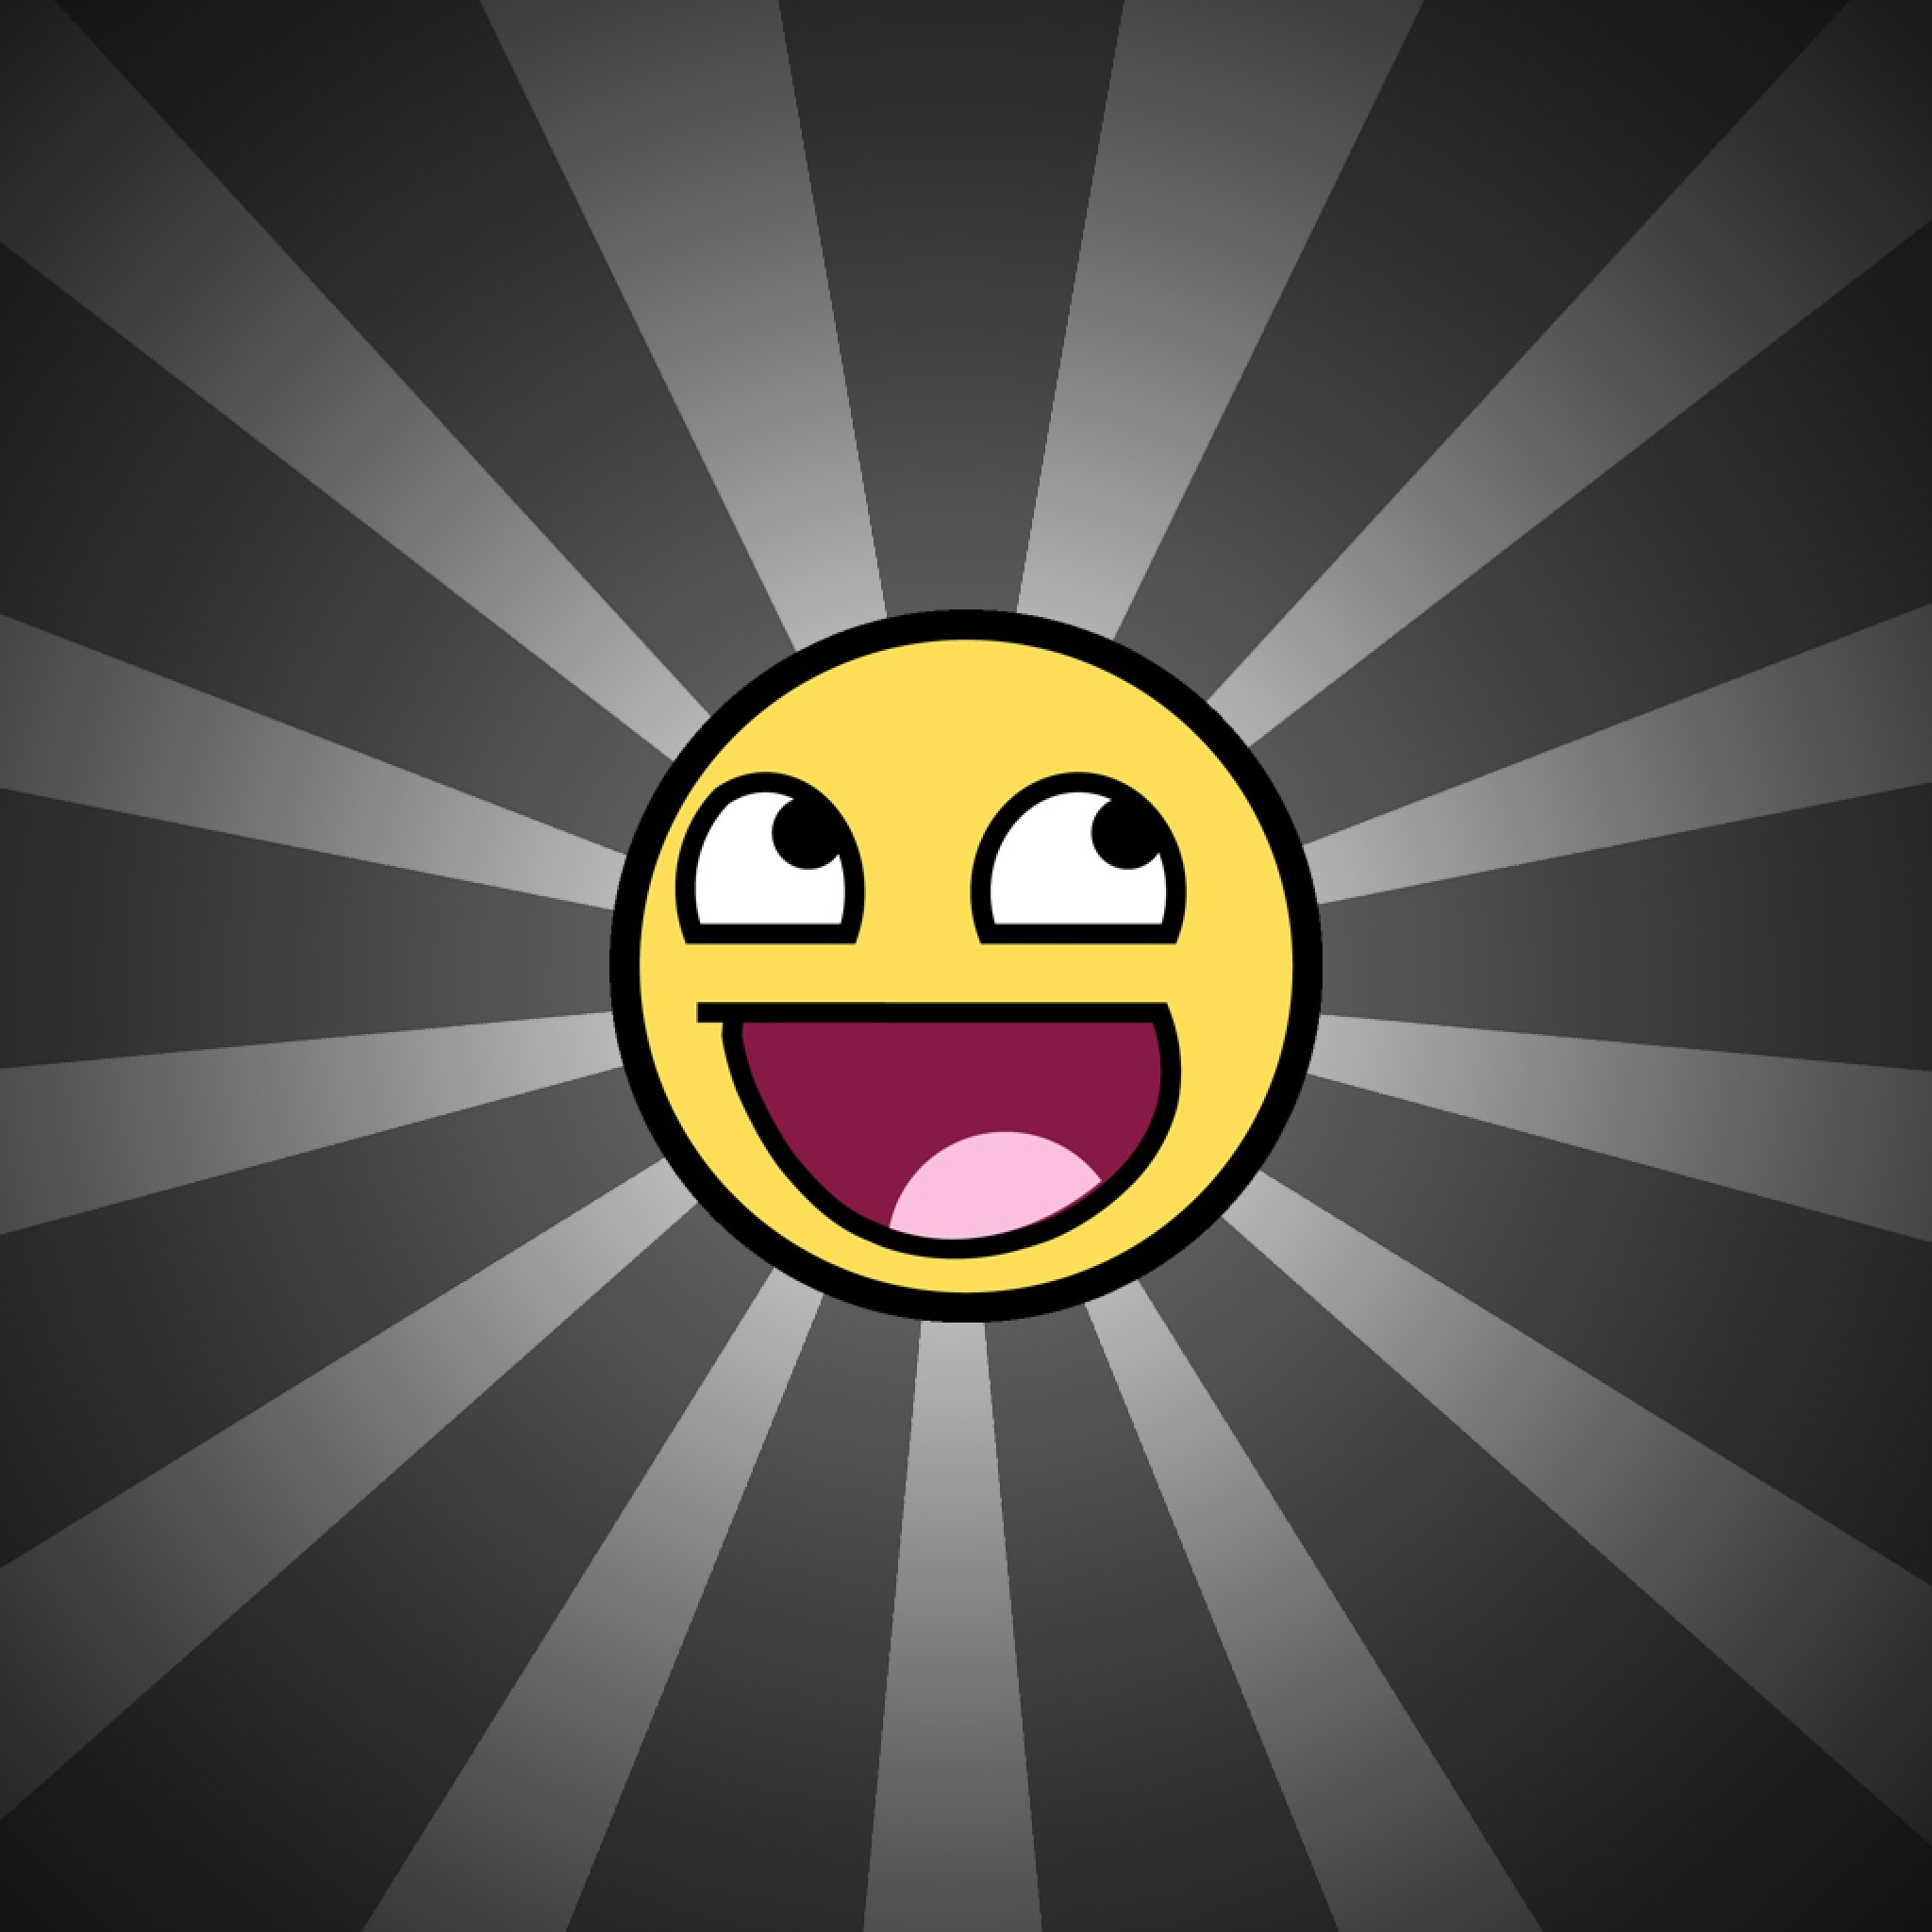 2048x2048 wallpaper.wiki-Awesome-smiley-Cool-iPad-Images-PIC-